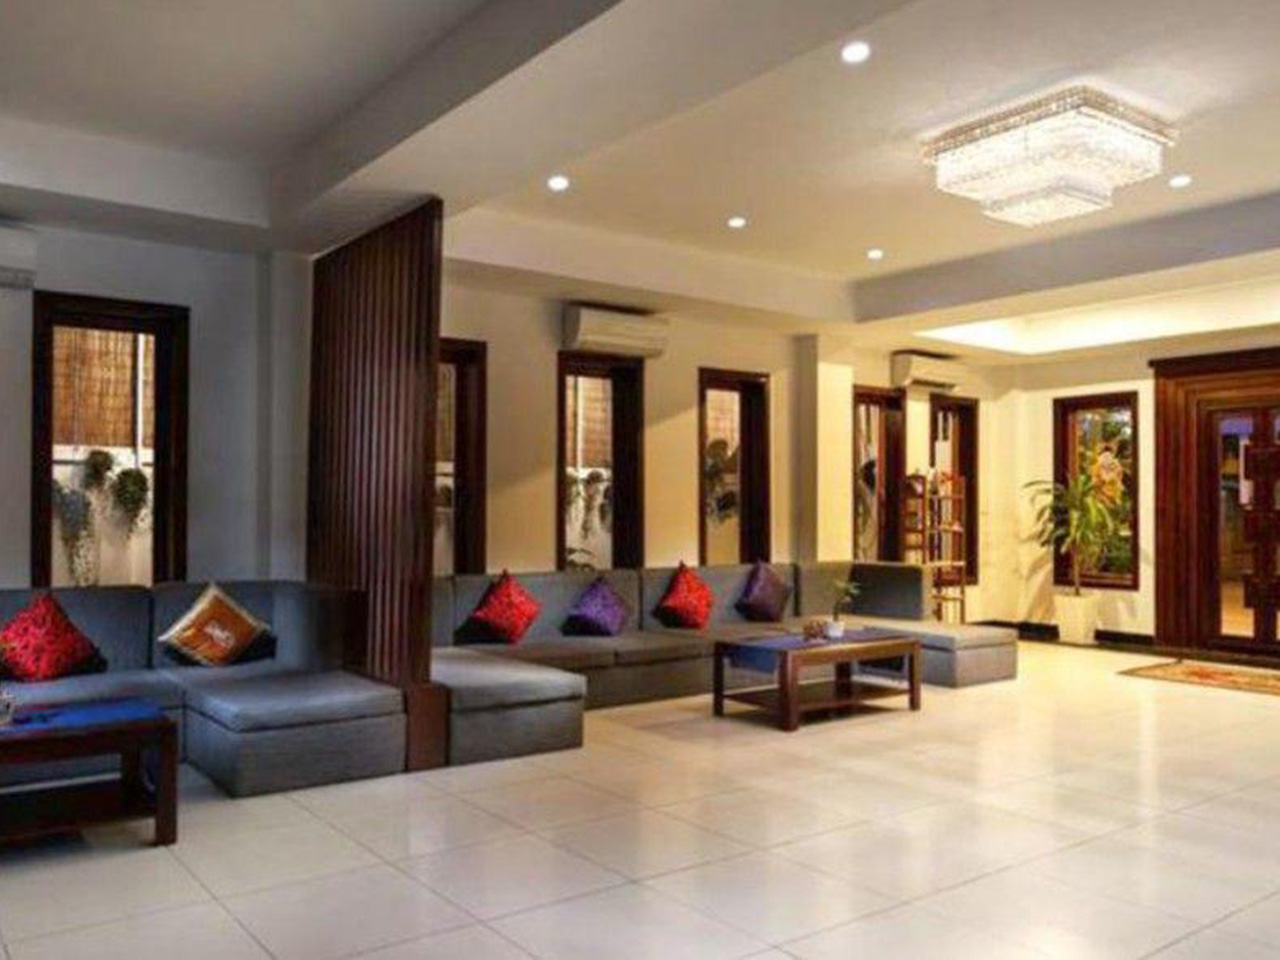 57 Rooms Hotel Building for Rent in Chamkarmon Area